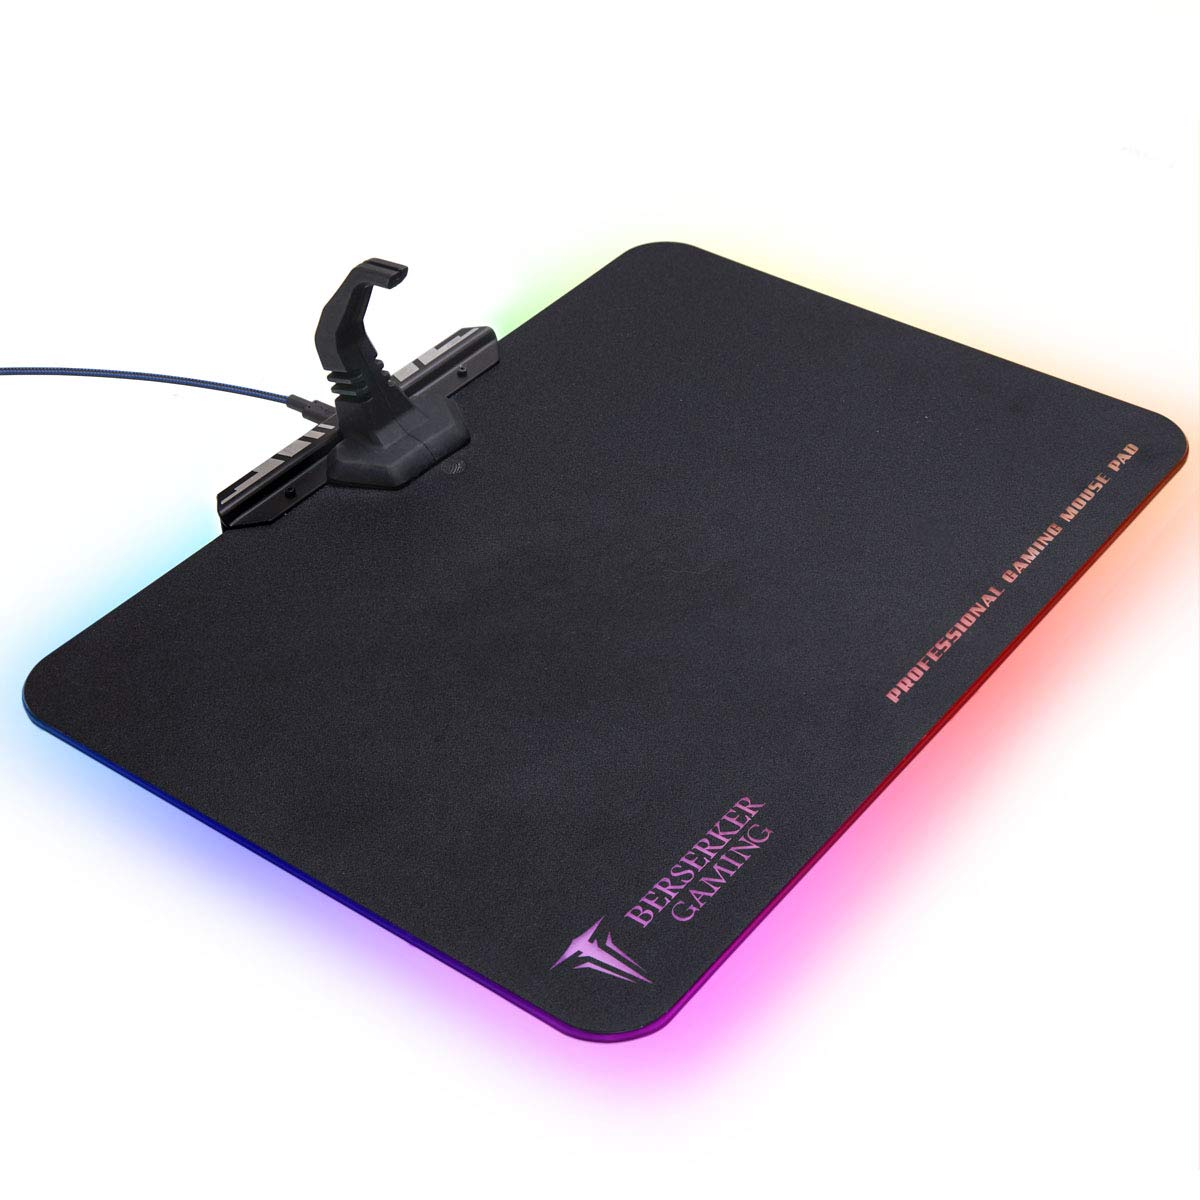 Large RGB LED Gaming Mouse Pad Hard Micro Texture Surface -7 Light Up Modes - Mouse Bungee Cable Manager Holder Attachment - PC; Mac; Linux